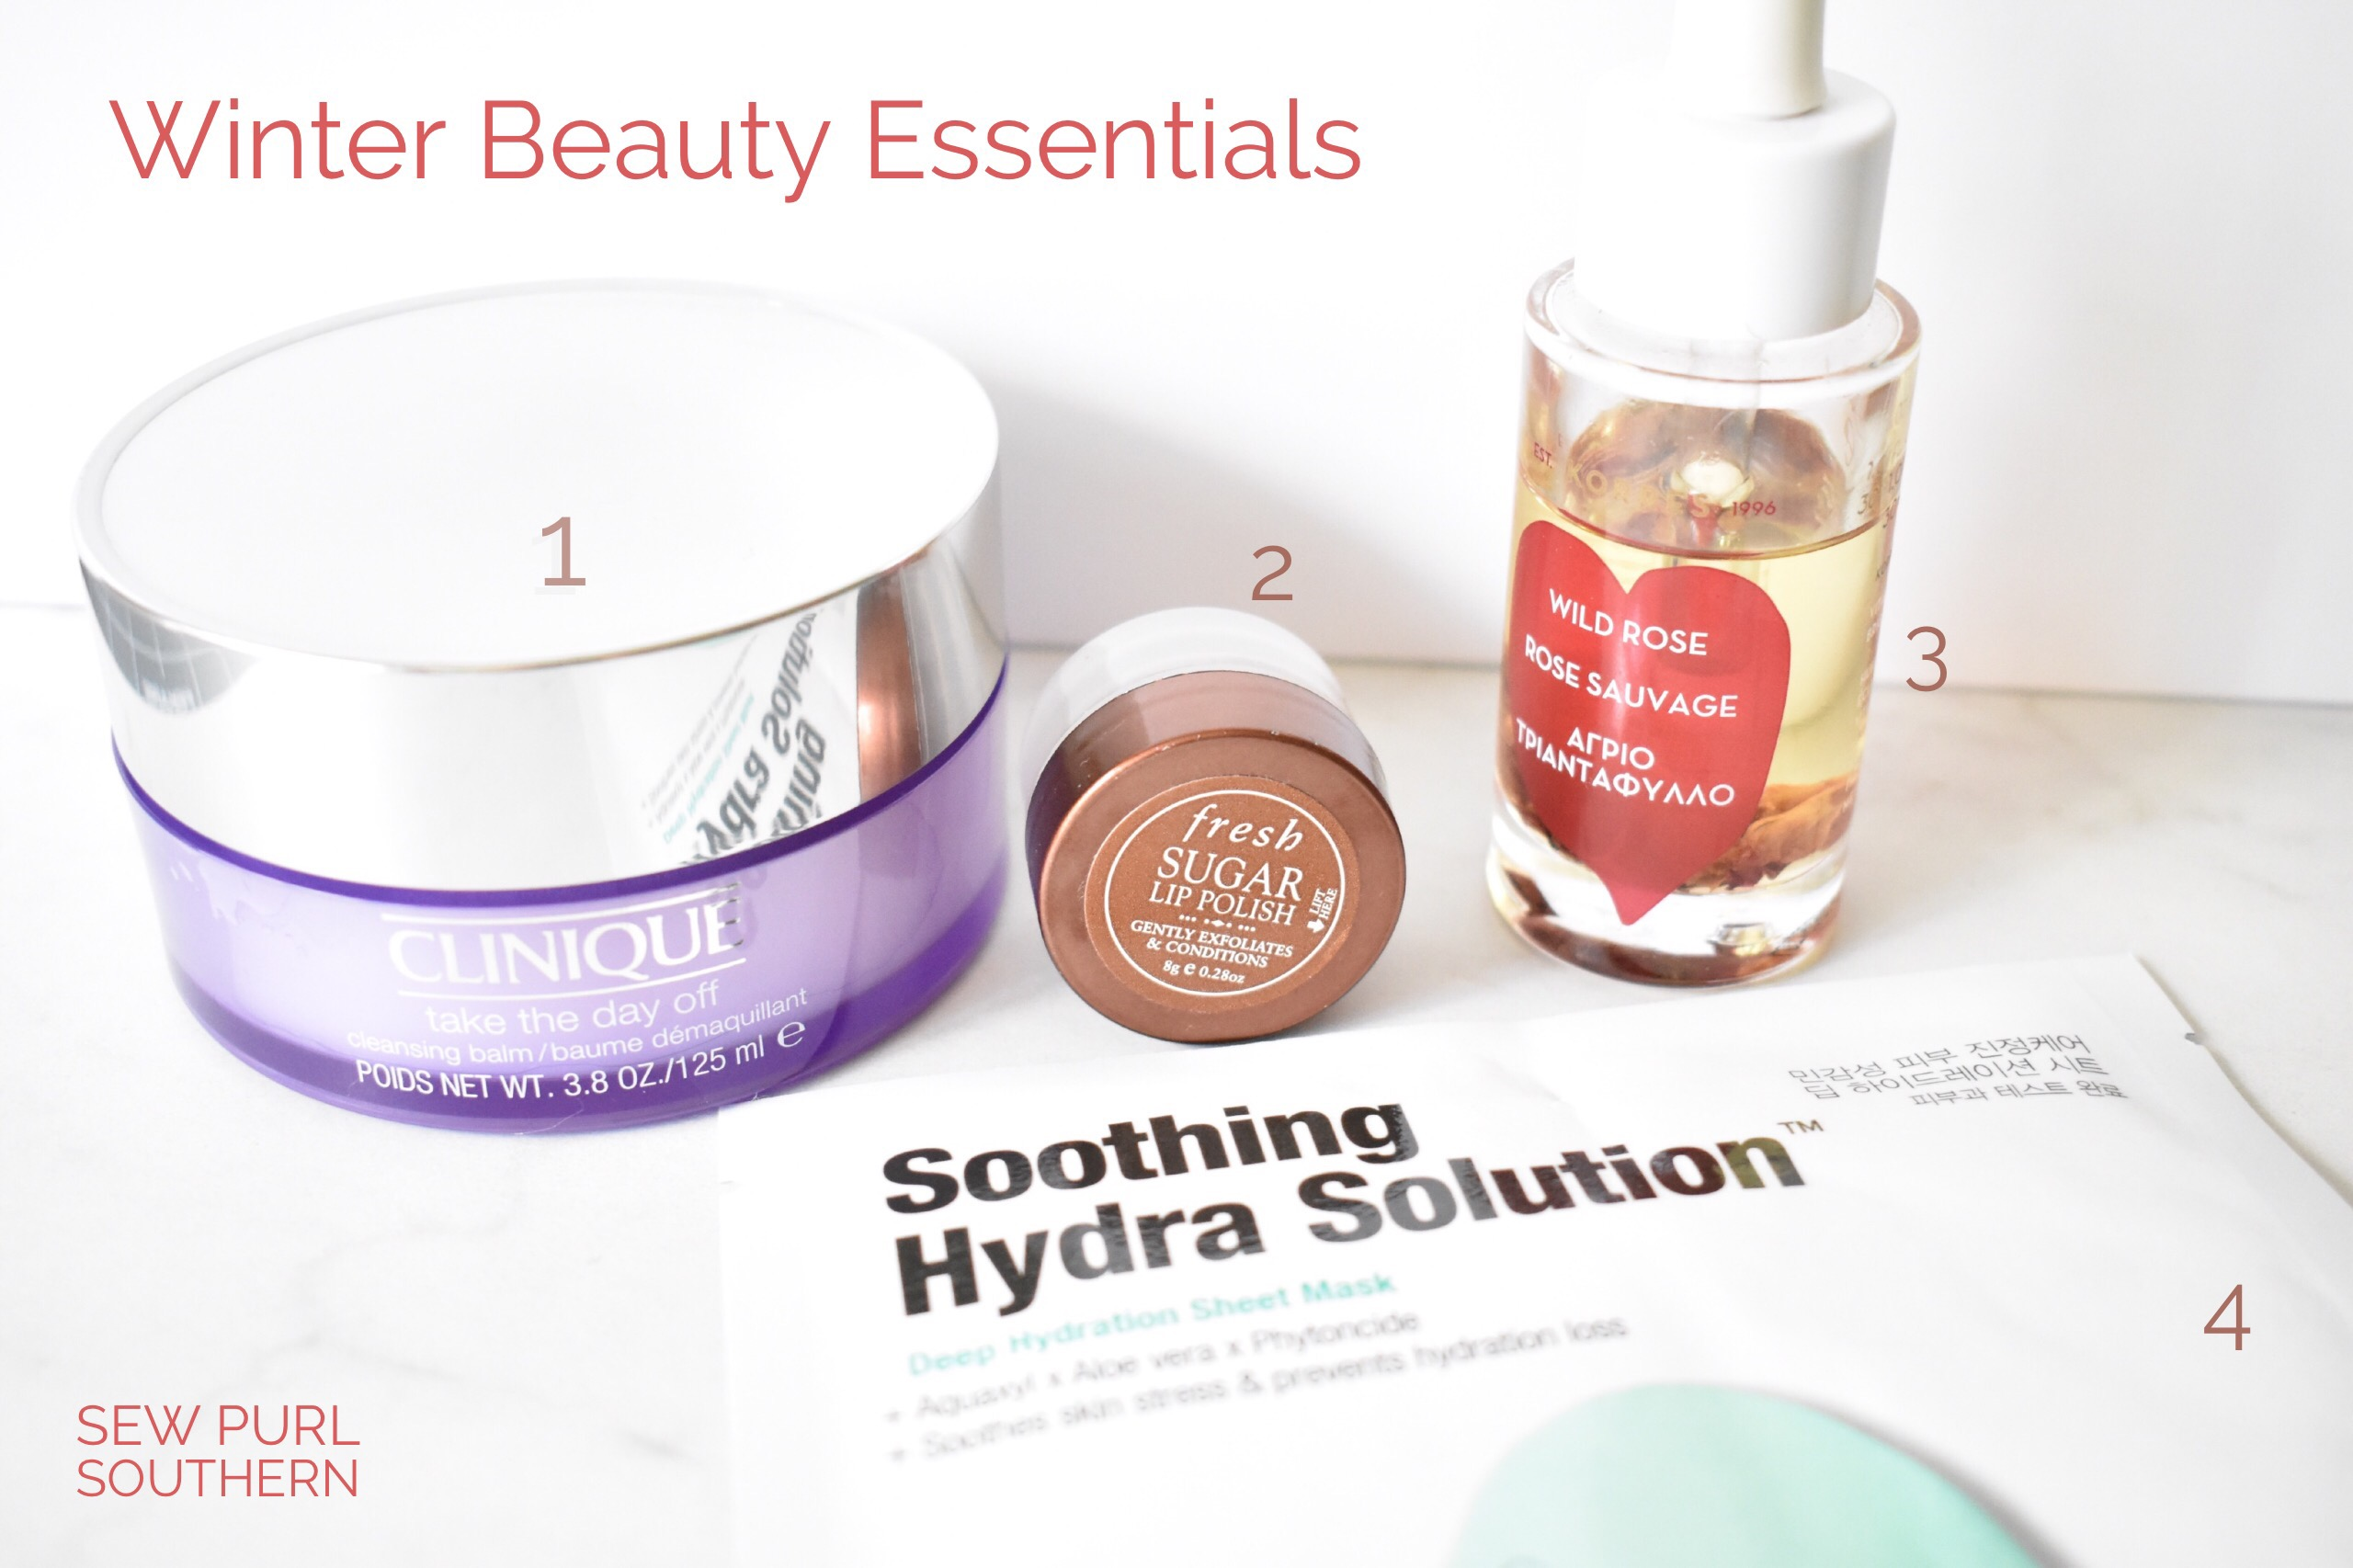 Discussion on this topic: Skin Care Essentials for the Harsh Winter, skin-care-essentials-for-the-harsh-winter/